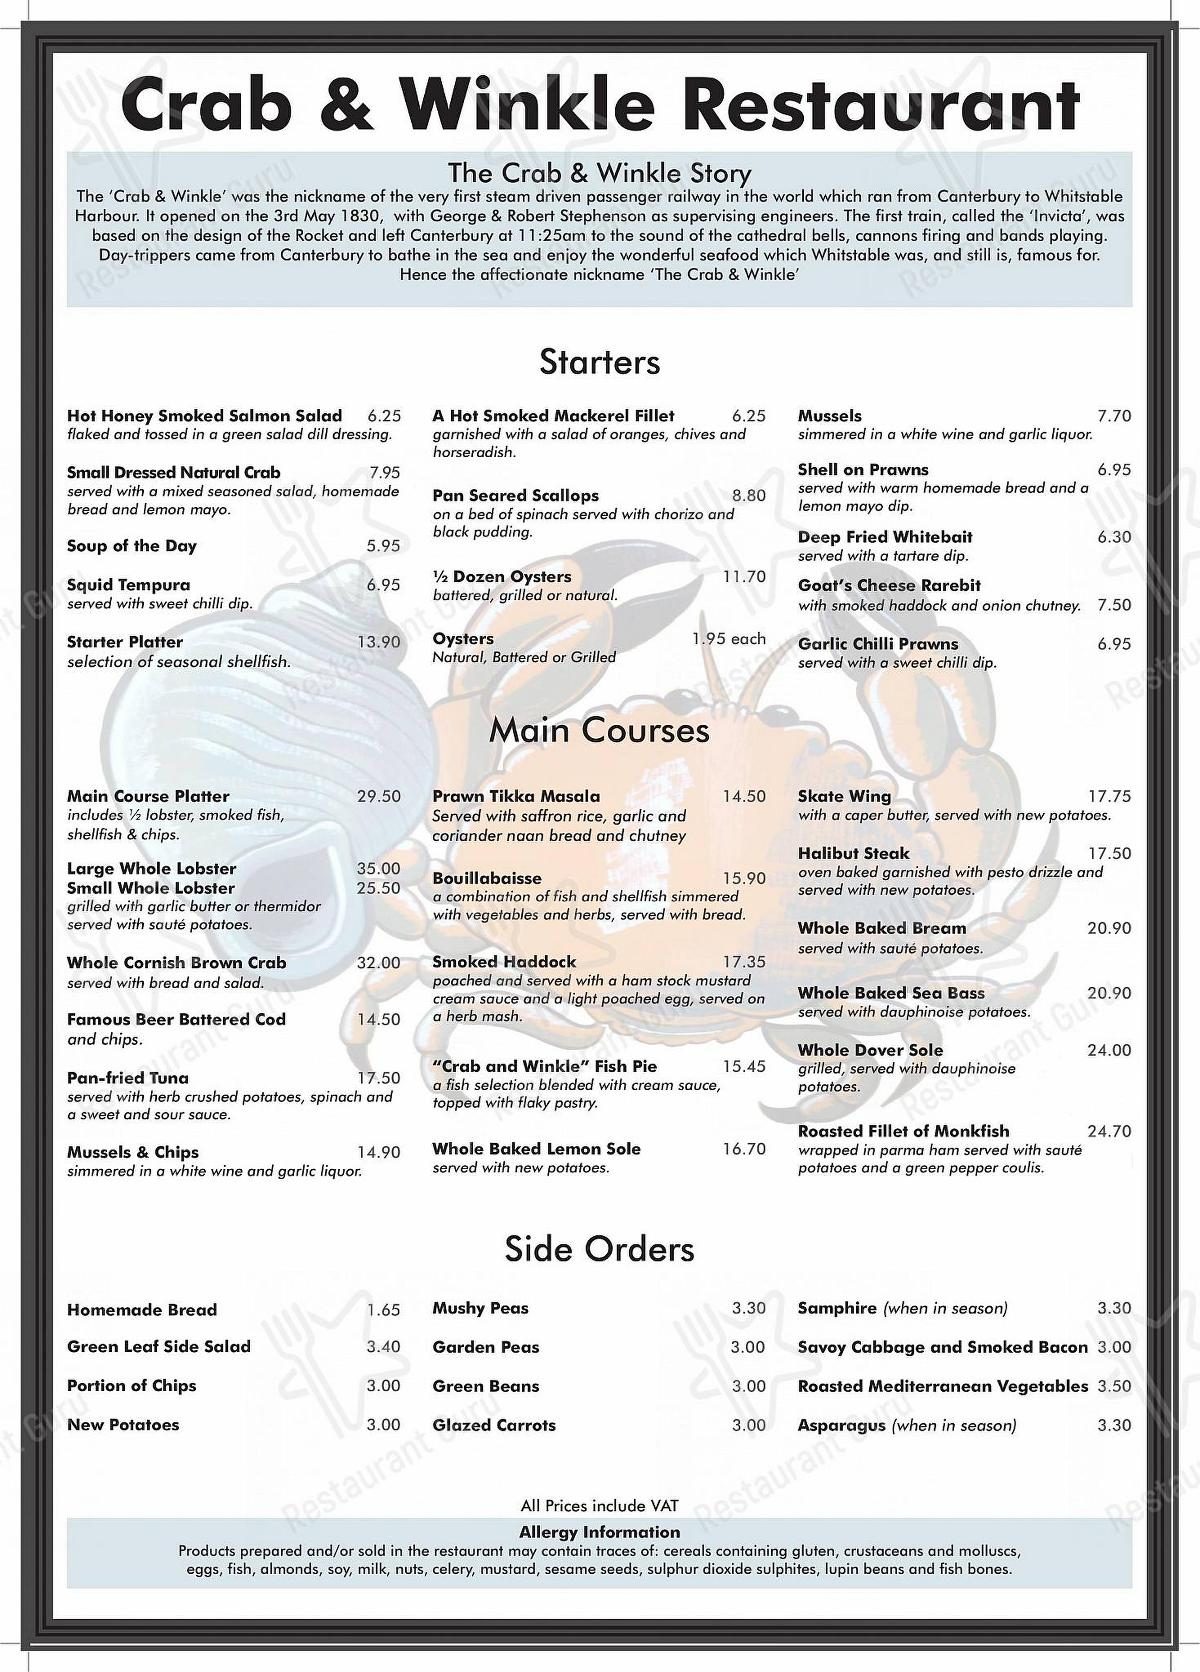 Check out the menu for Crab & Winkle